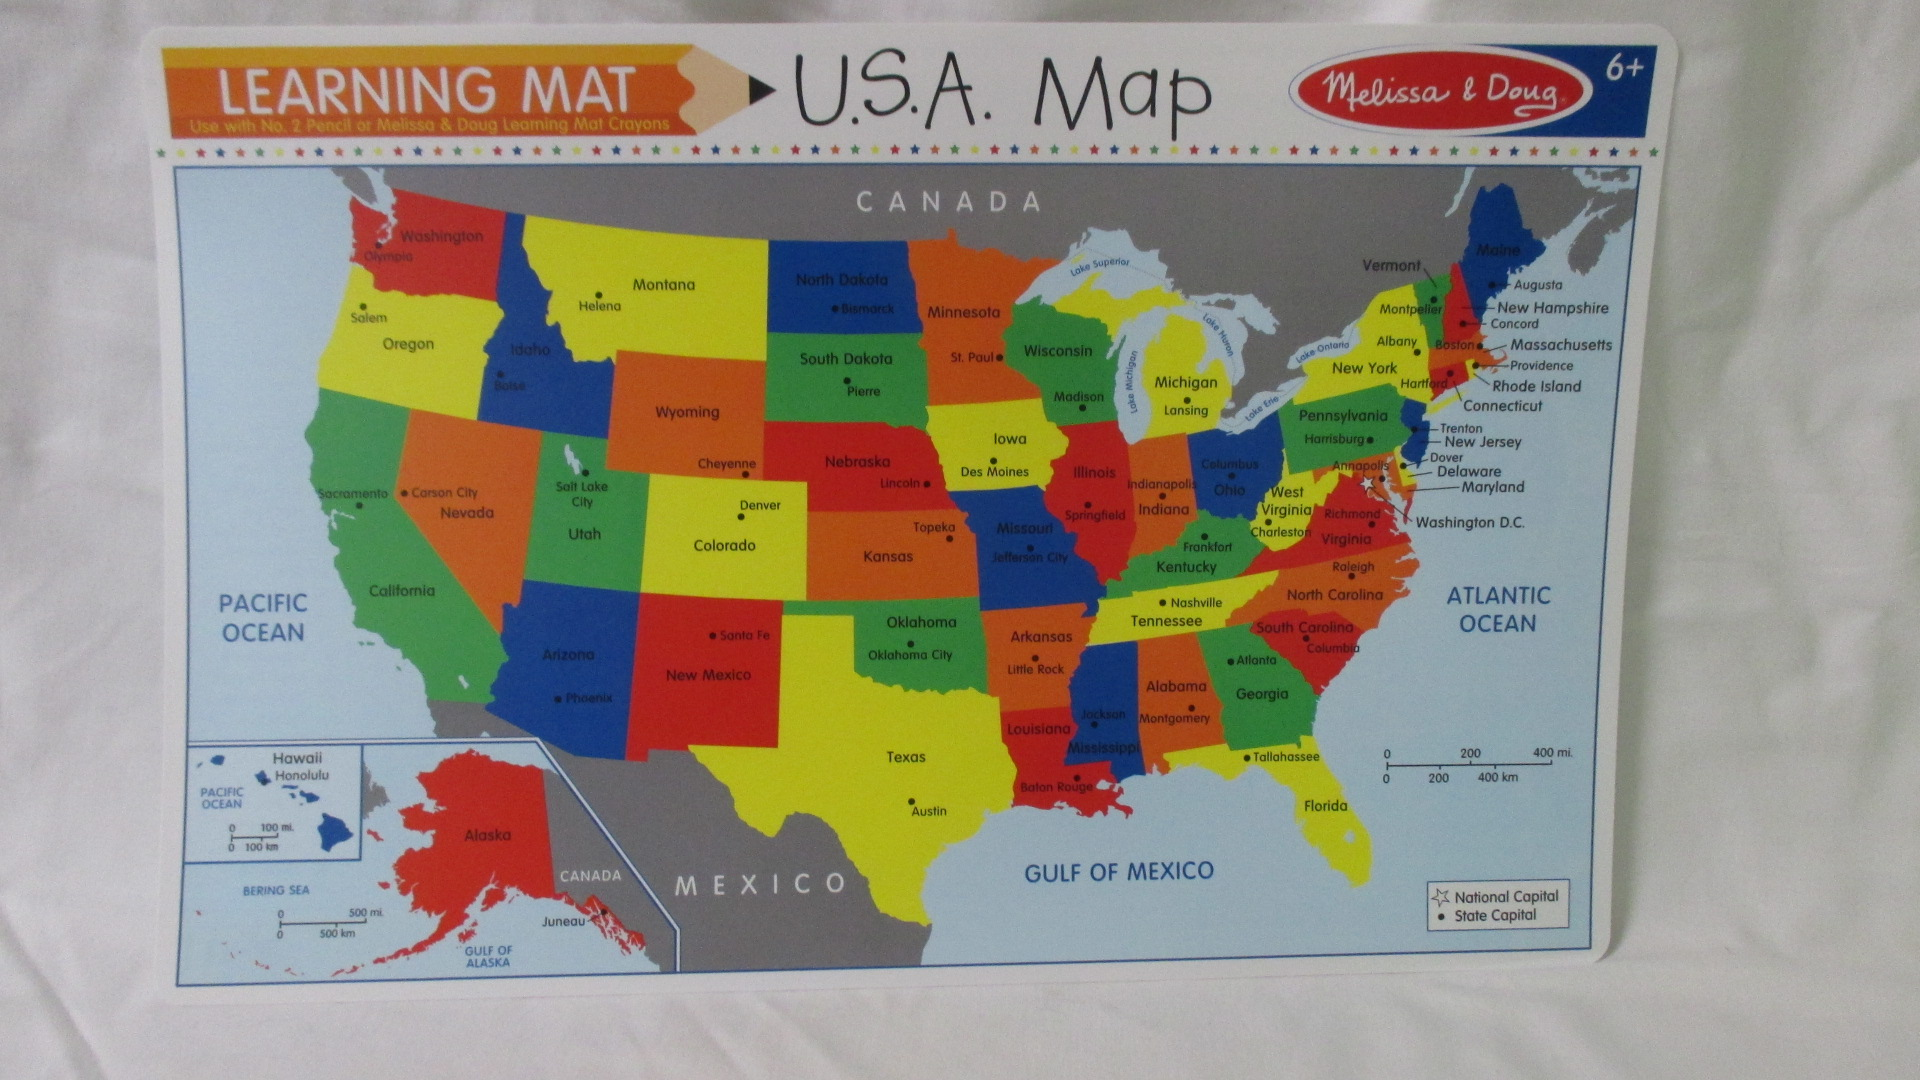 Usa Map Puzzles Online.U S A Map Learning Map